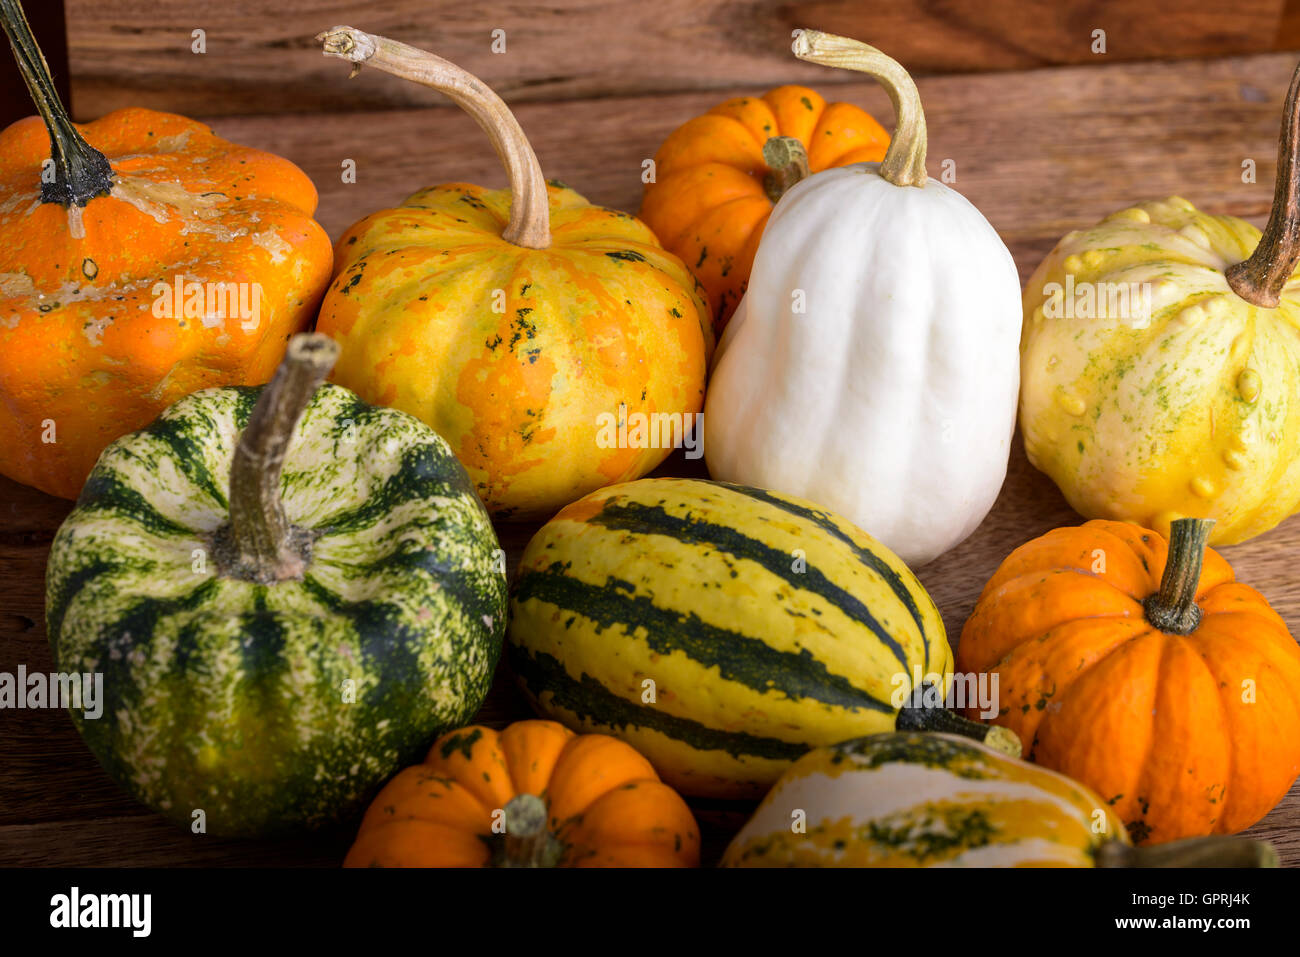 group of small decorative pumpkins on wood stock photo 117303779